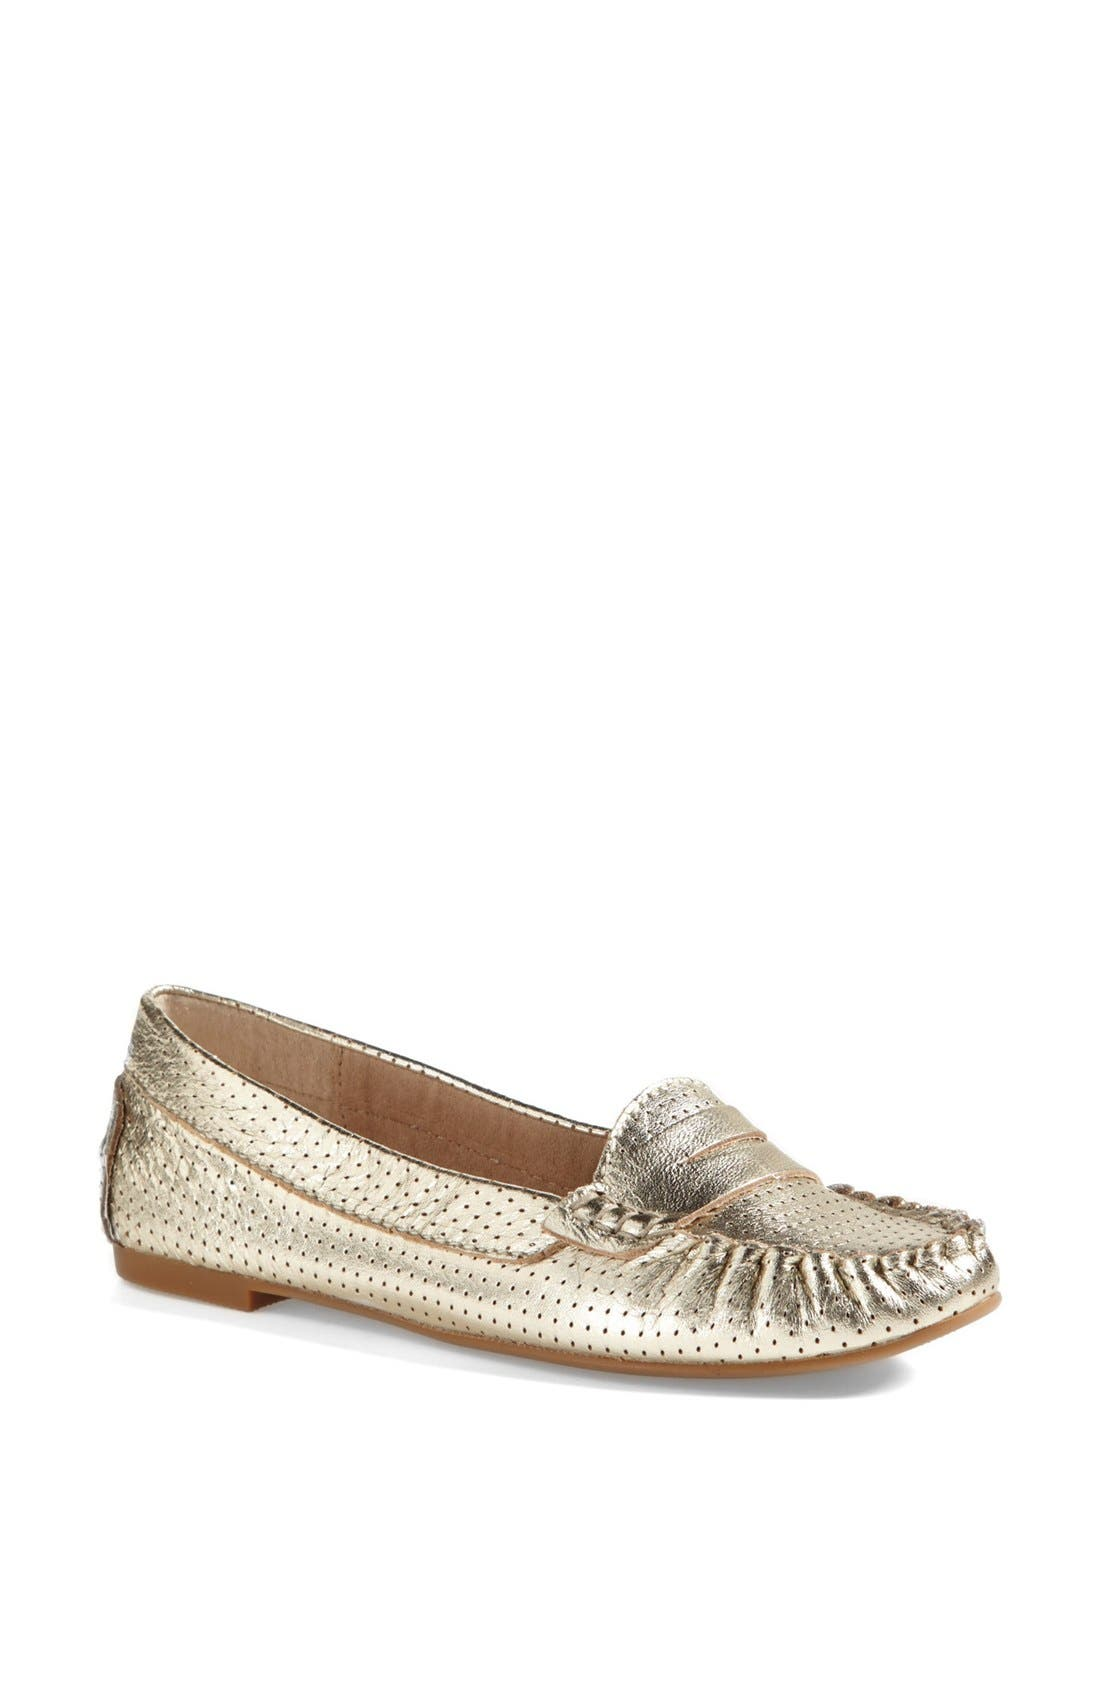 Main Image - Steve Madden 'Murphey' Leather Flat